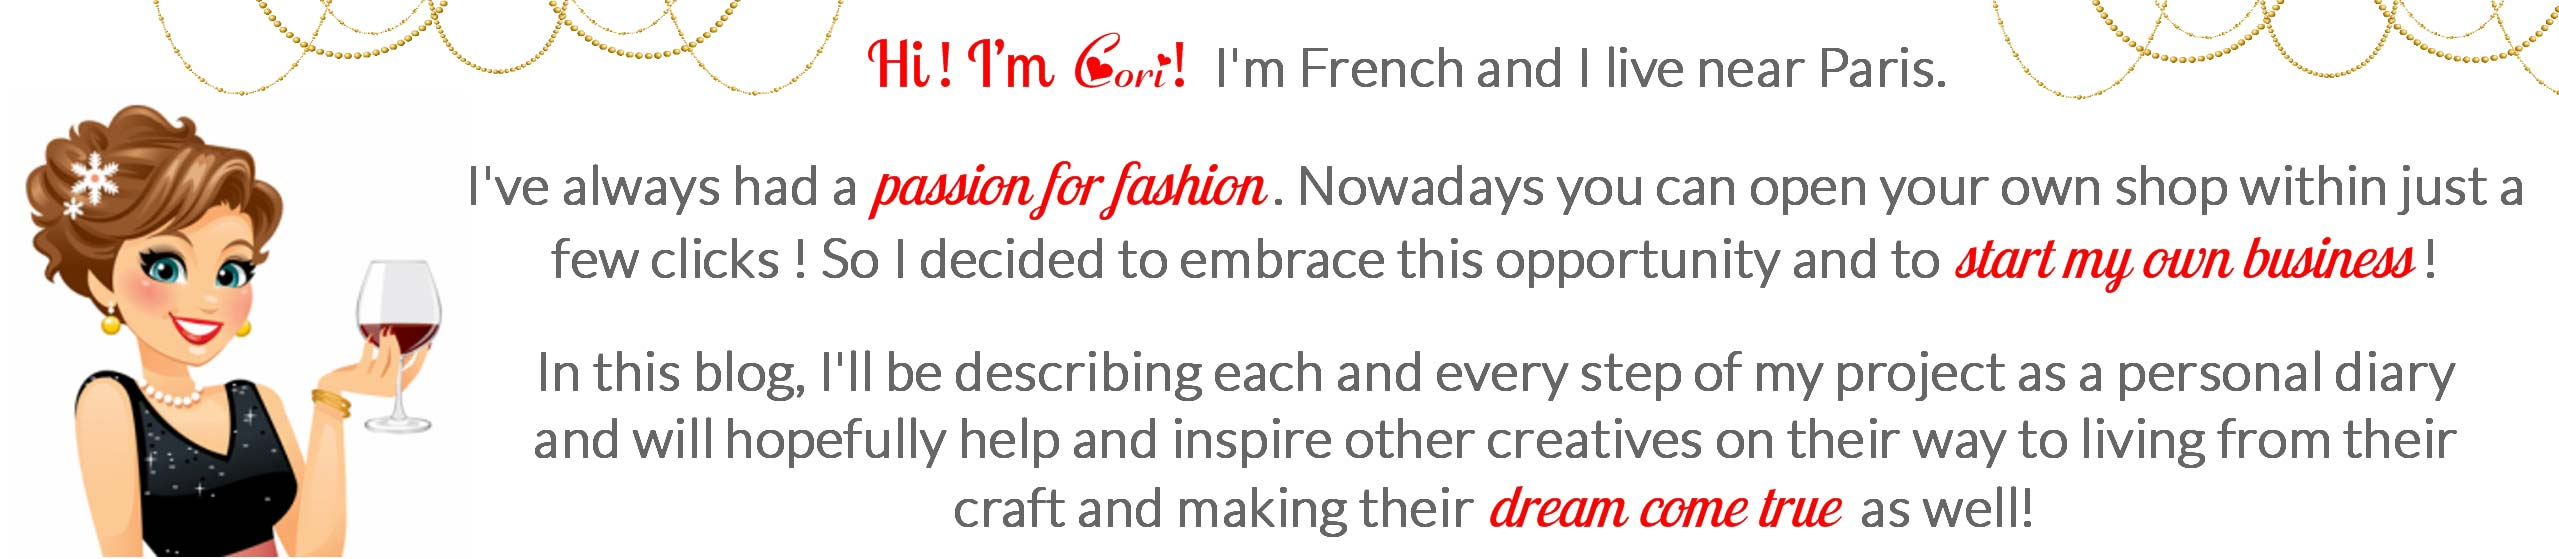 The Cori Paris Business blog is for creatives who want to start their craft online and start their own online business